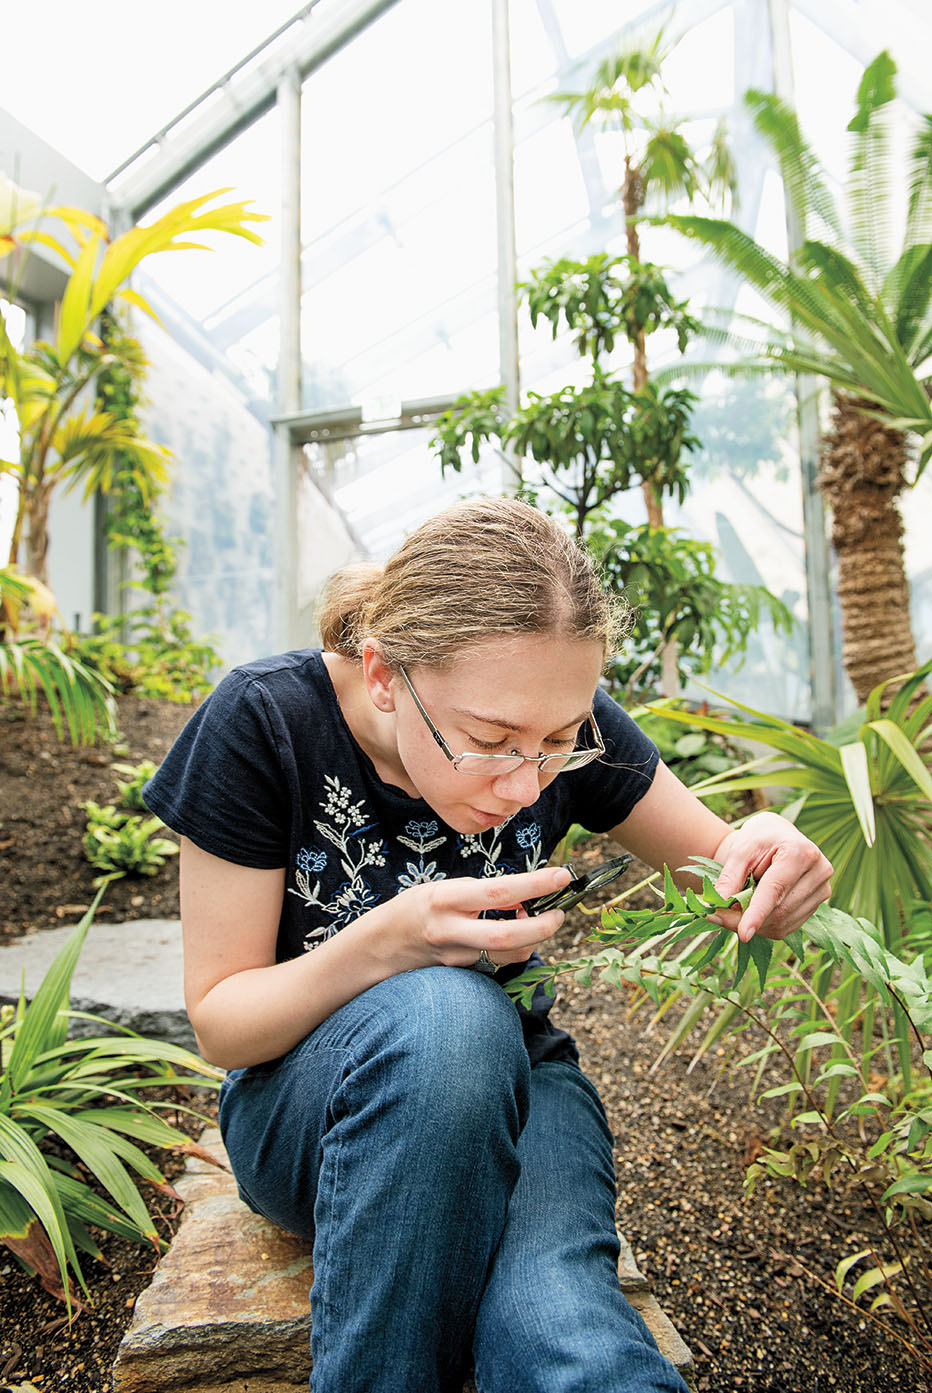 A photo shows Abigail Conte ' 20 studying a plant.